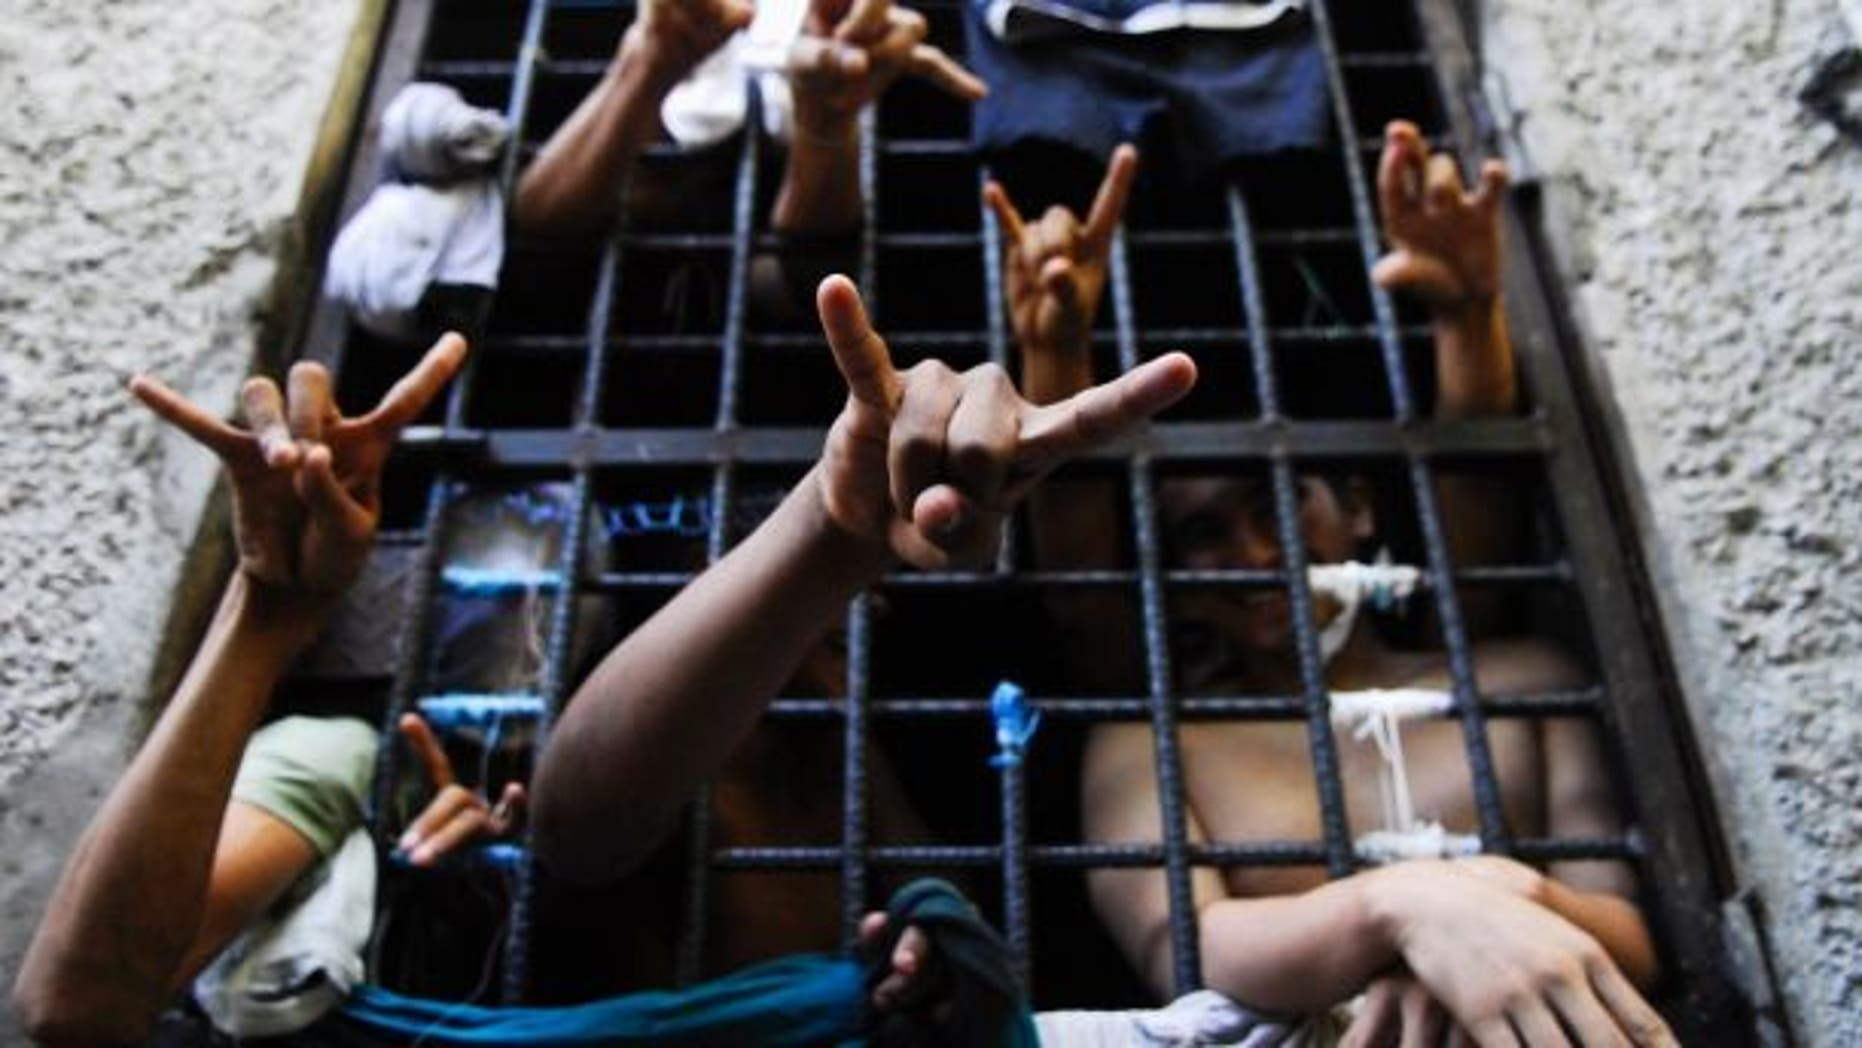 People arrested in El Salvador for being members of the MS-13 street gang flash their gang's hand signs from inside a jail cell.